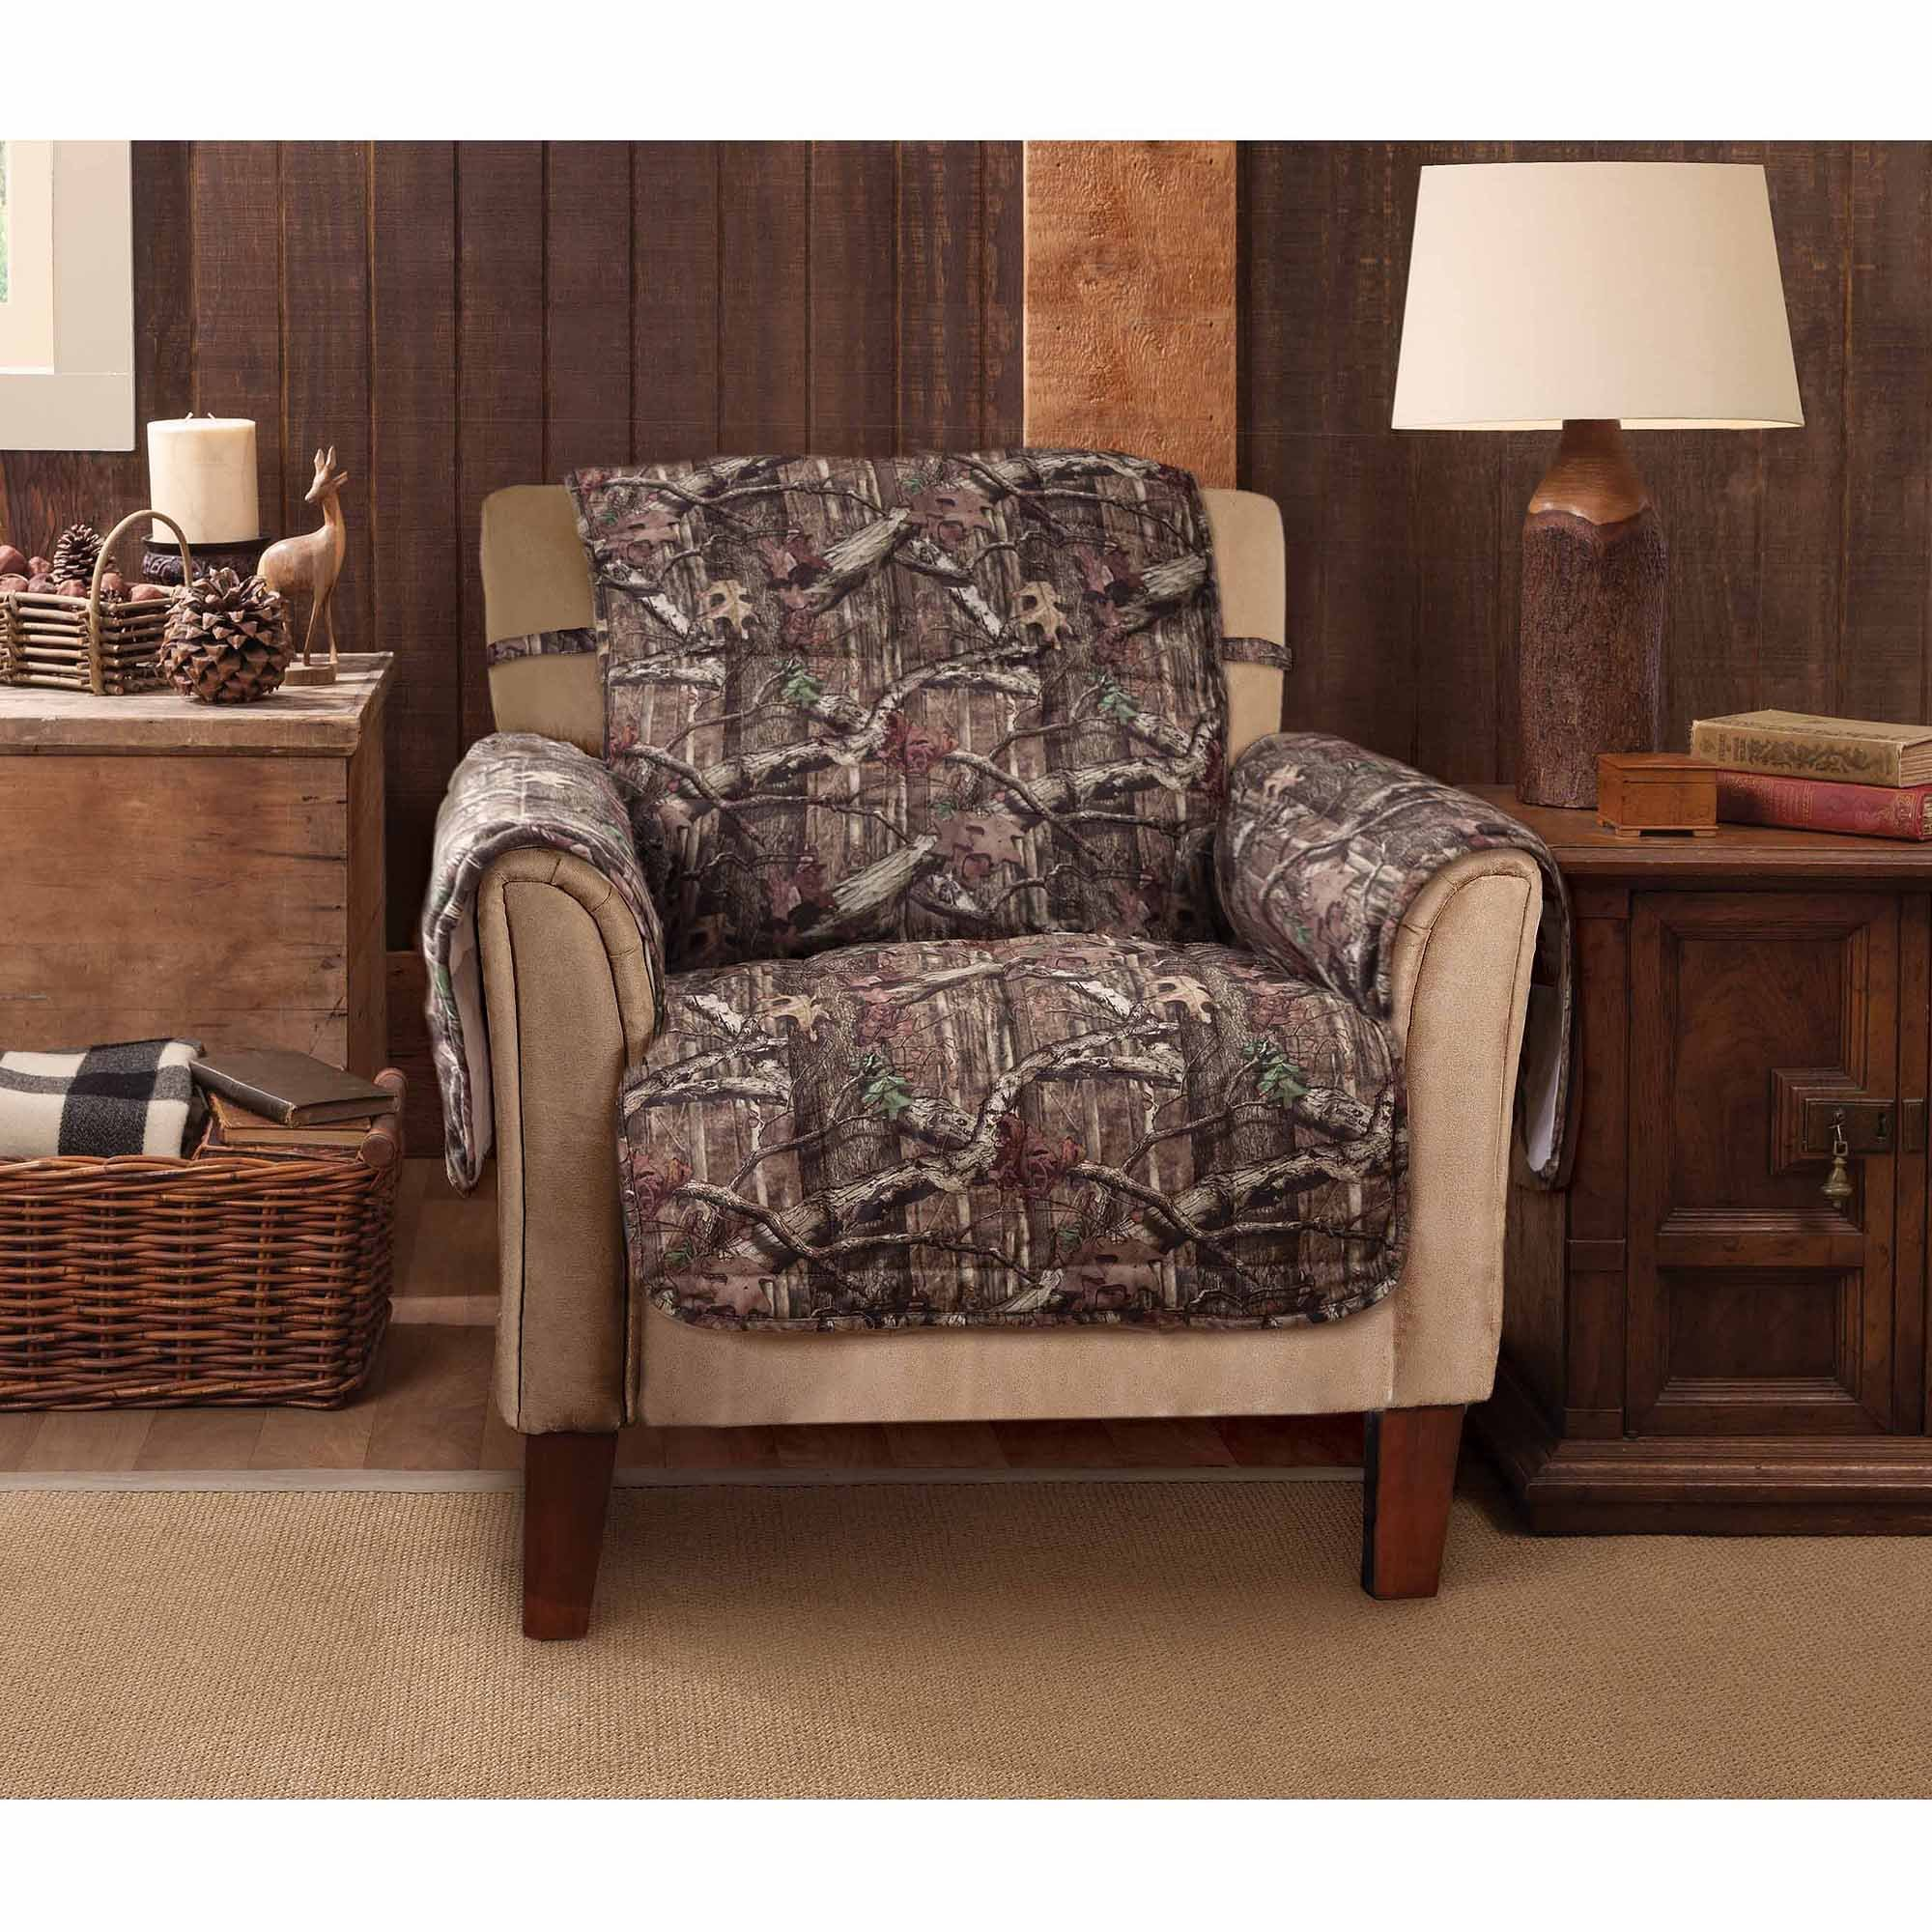 MN 1 Piece Grey Brown Hunting Theme Chair Protector, Camouflage Cabin Lodge House Hunt Camo Pattern Woods Cottage Tree Branches Furniture Protection Cover Pets Animals Covers, Polyester